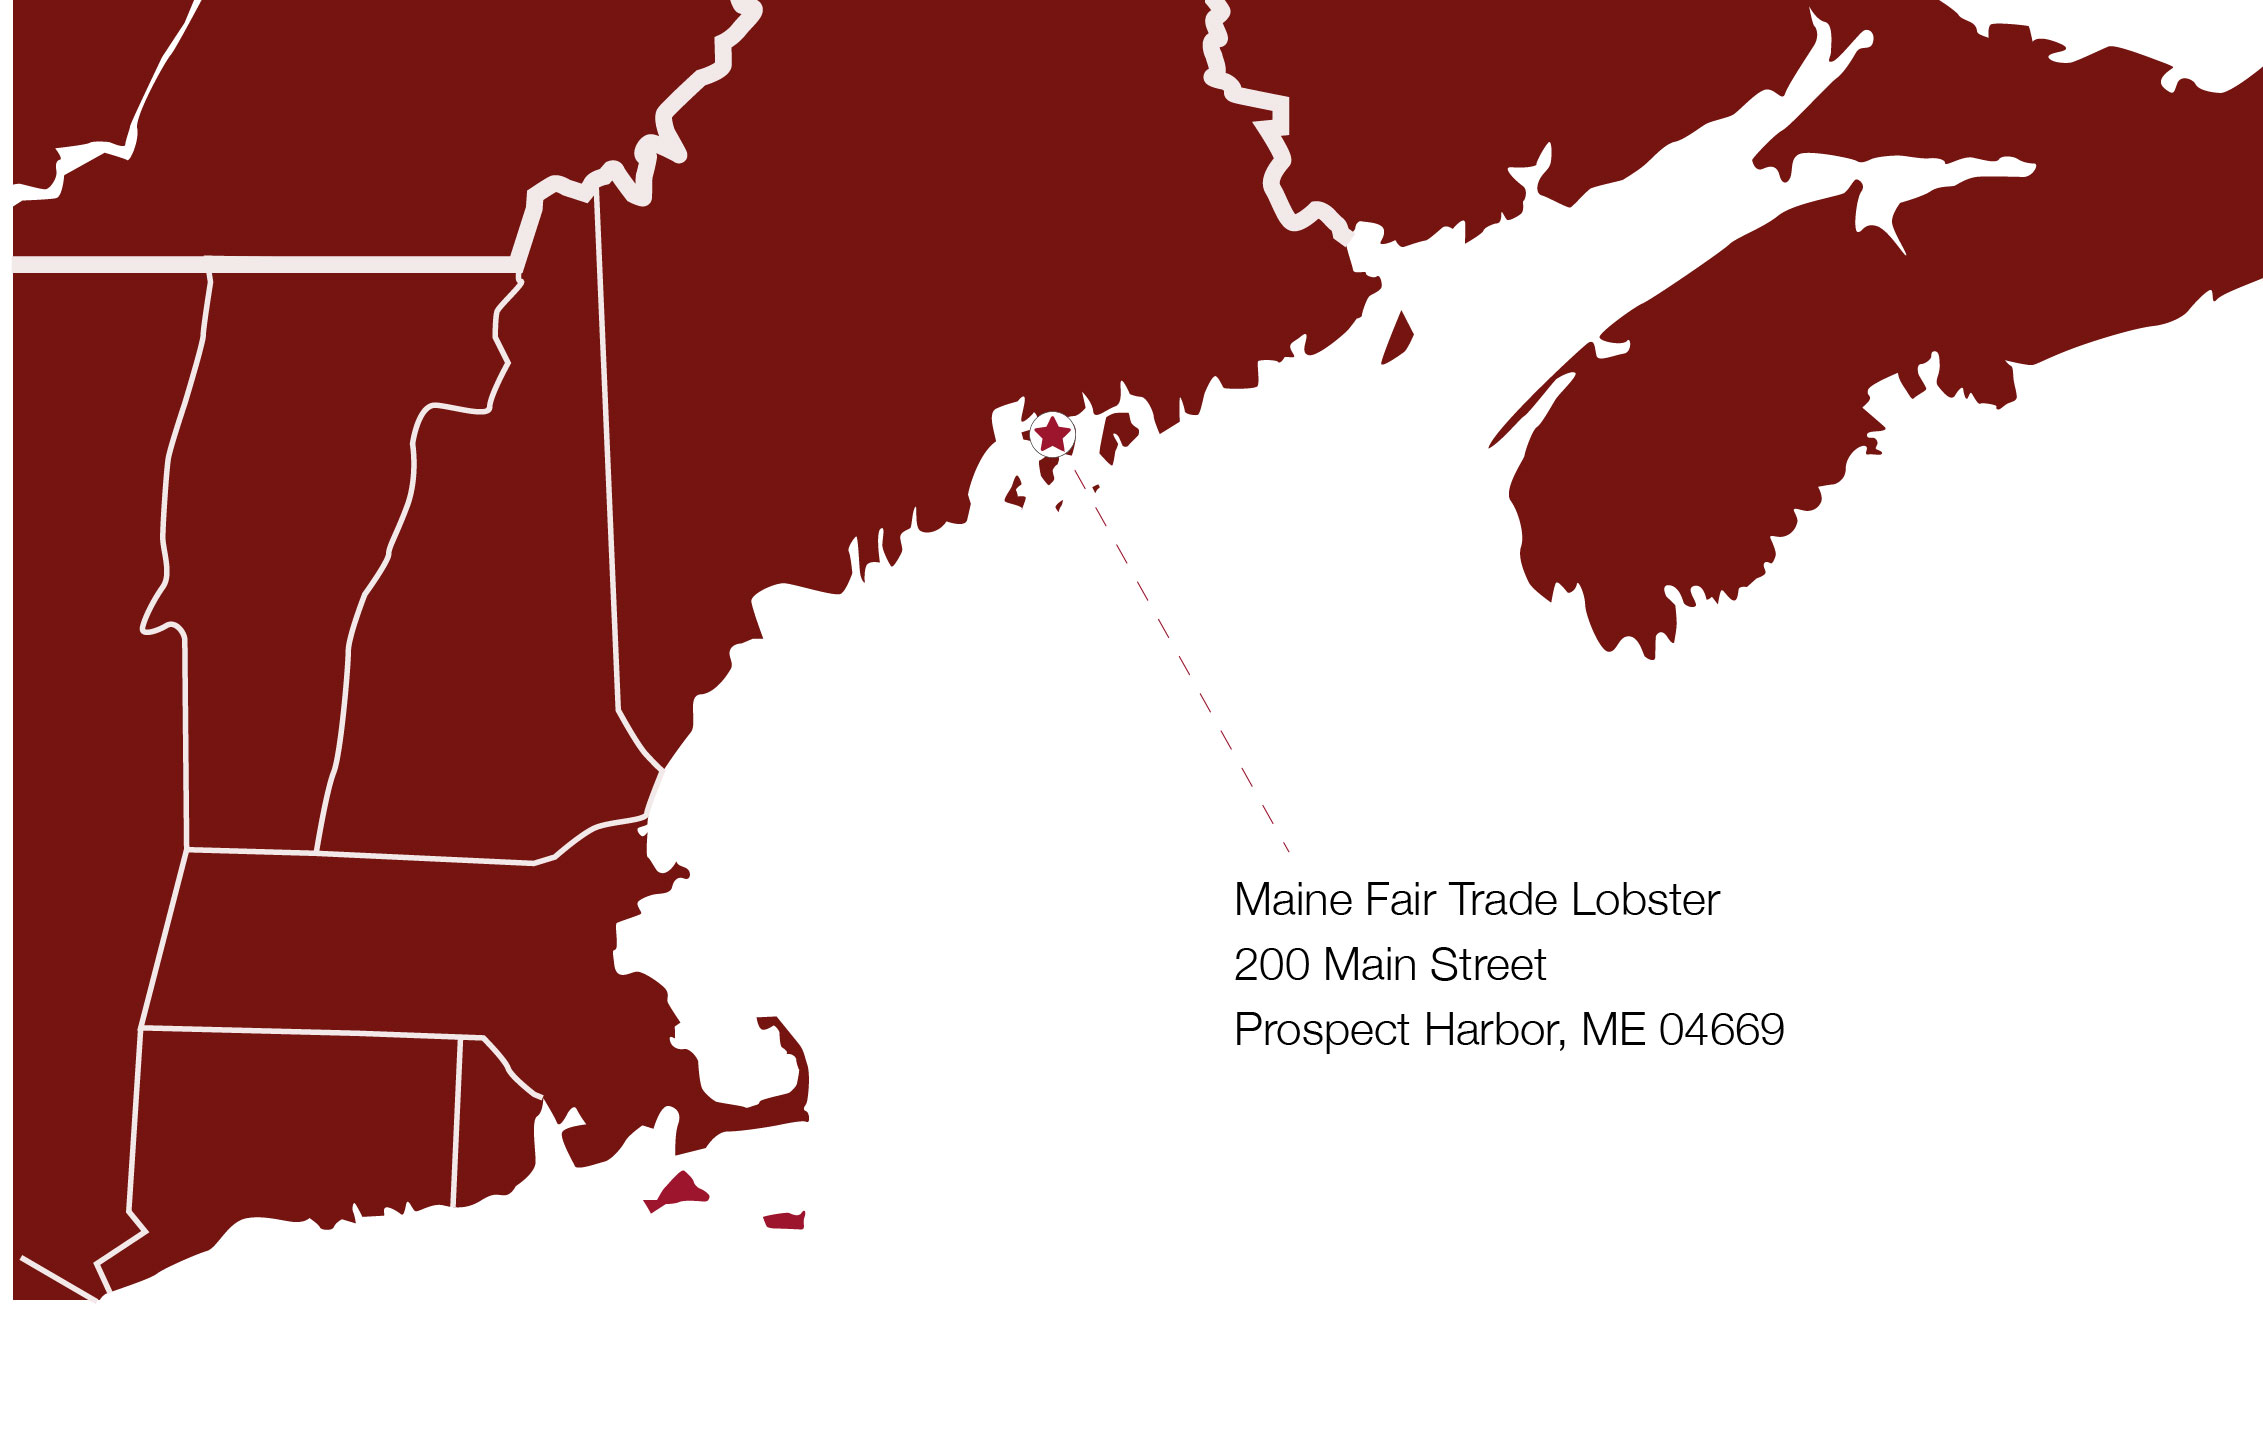 North East Map Maine Fair Trade